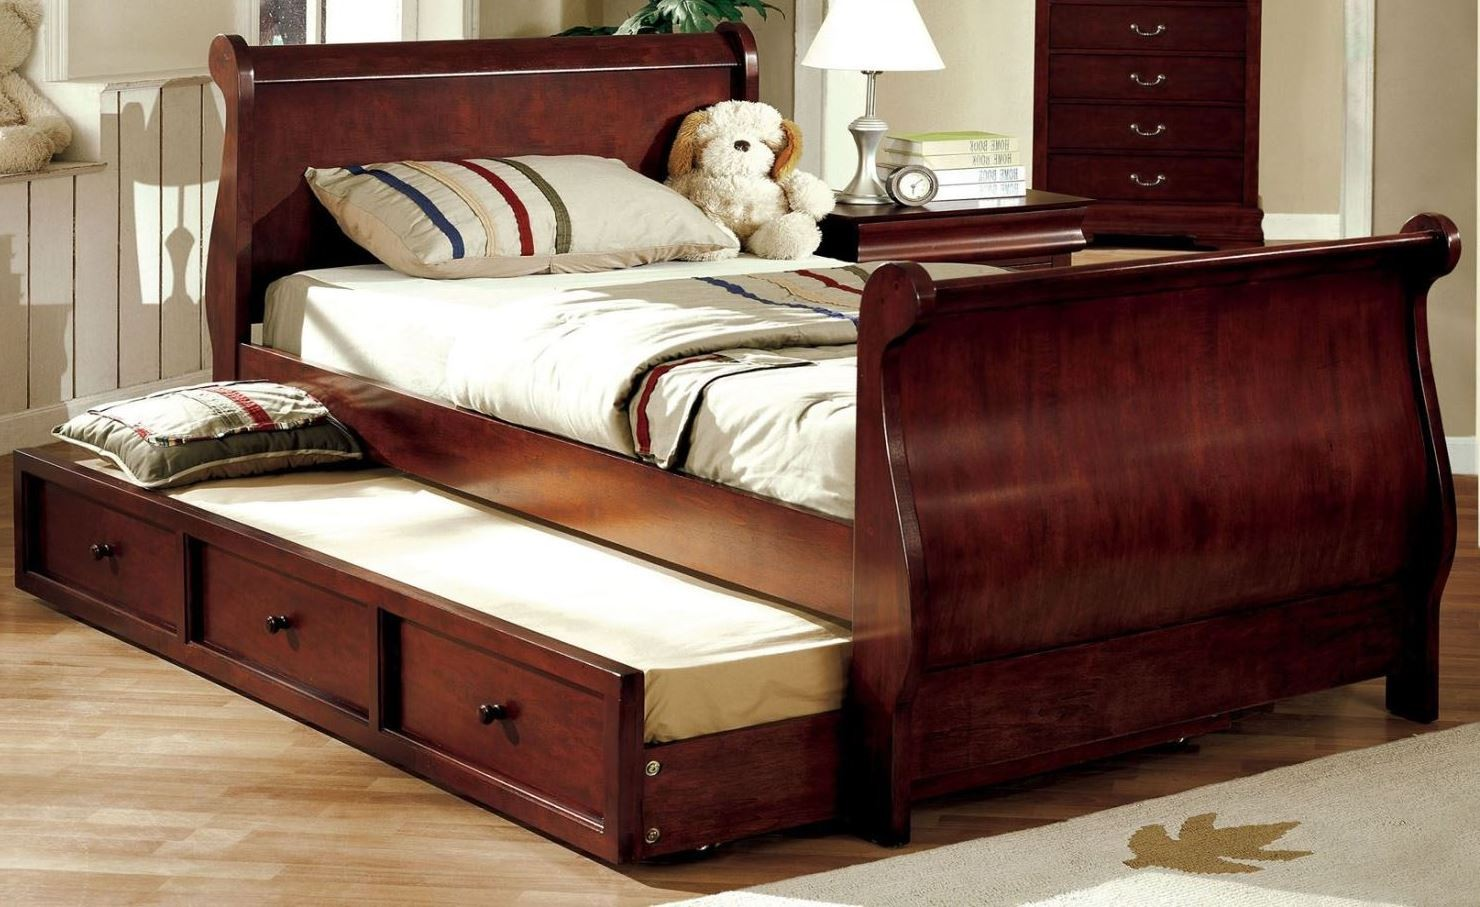 Louis philippe jr dark cherry twin trundle sleigh bed for Furniture of america customer service